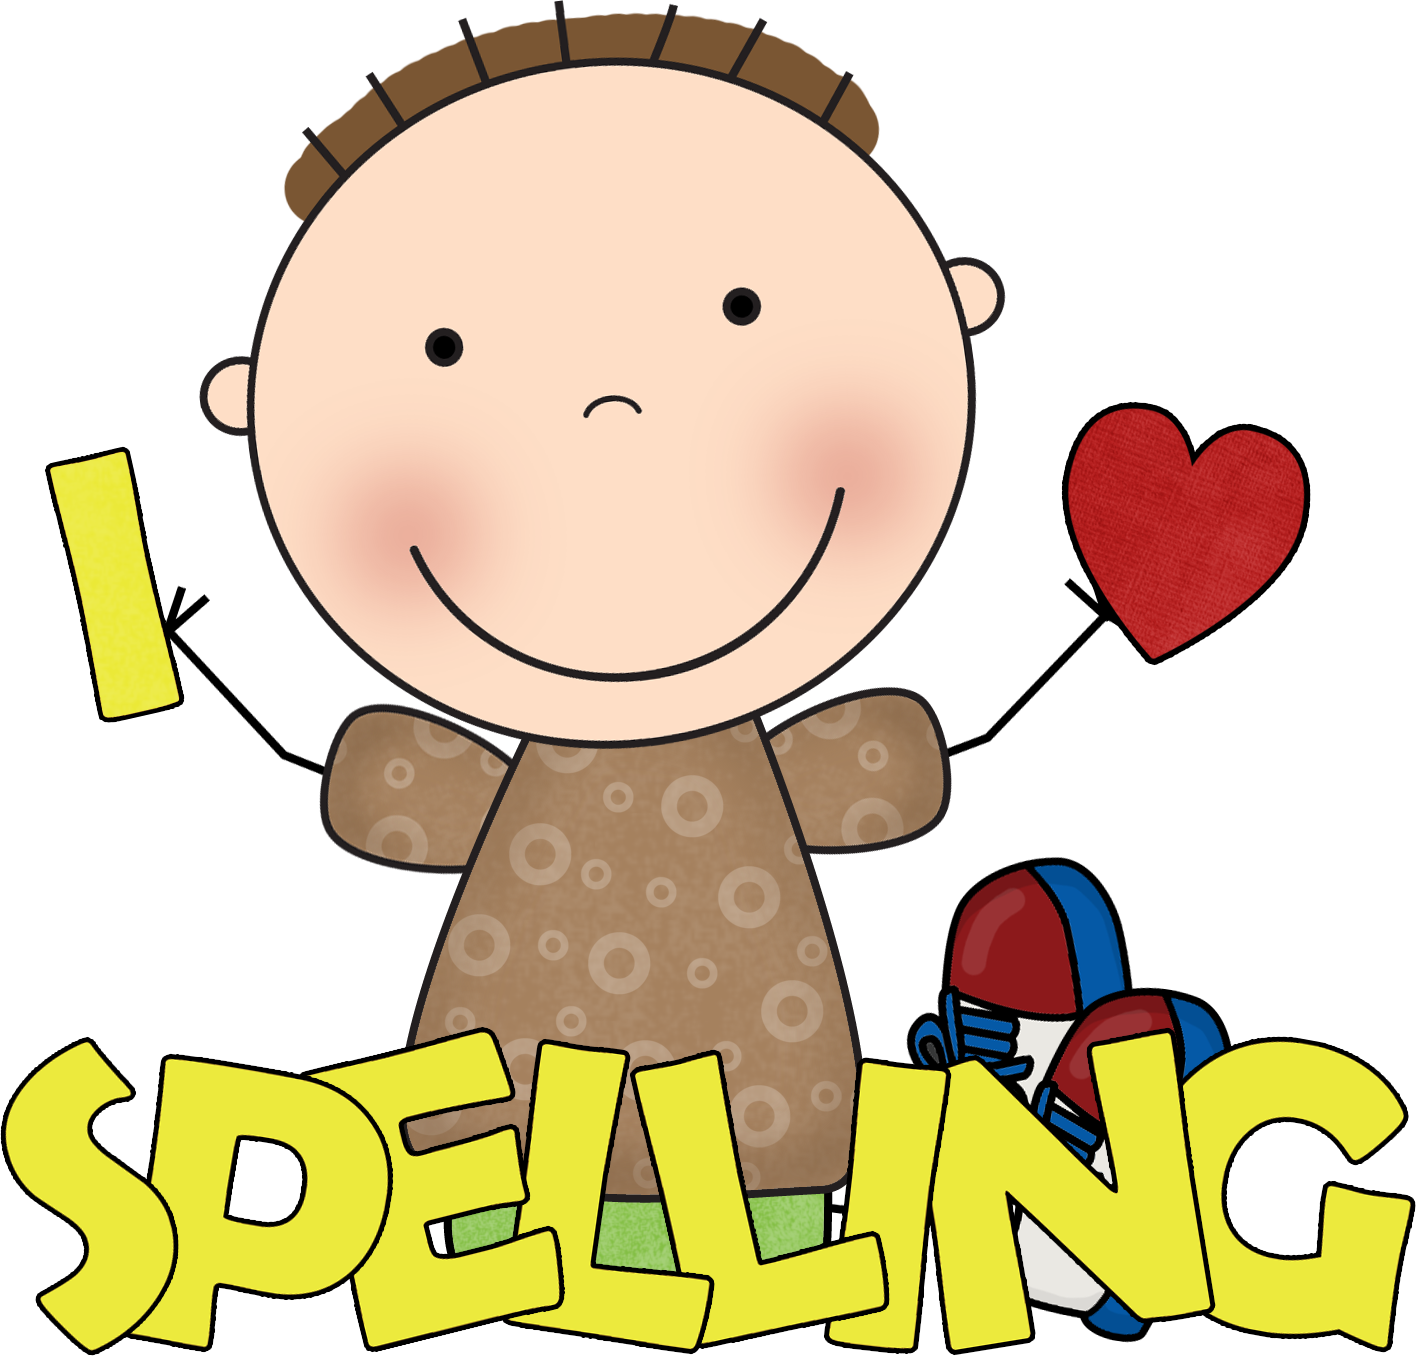 Spelling words clipart